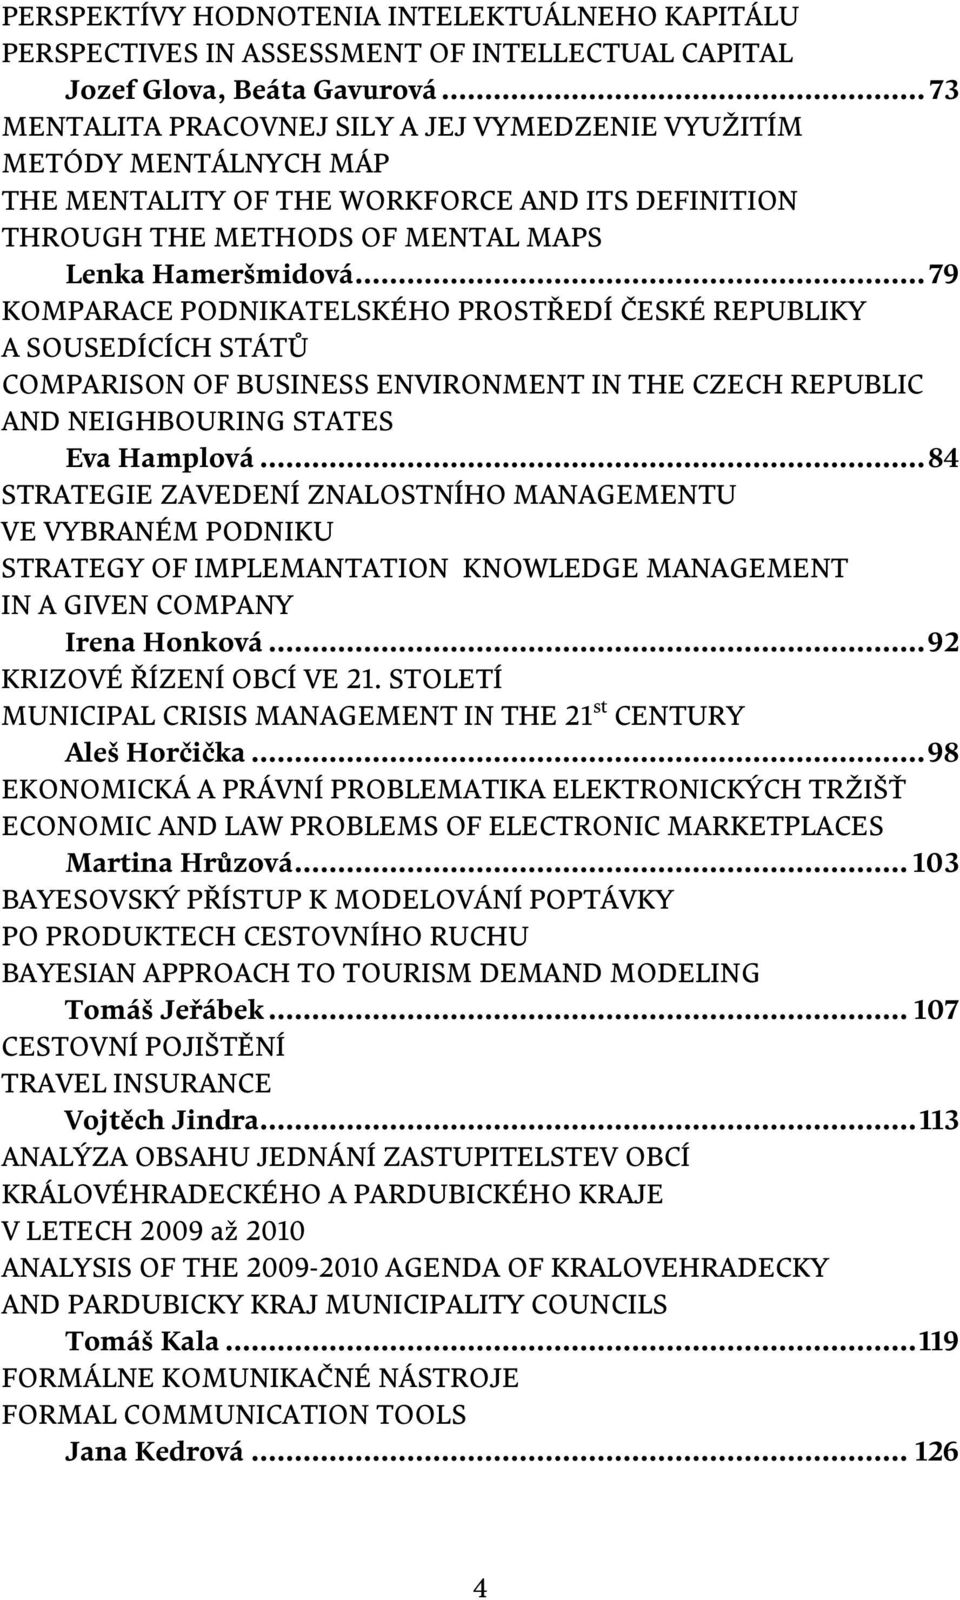 .. 79 KOMPARACE PODNIKATELSKÉHO PROSTŘEDÍ ČESKÉ REPUBLIKY A SOUSEDÍCÍCH STÁTŮ COMPARISON OF BUSINESS ENVIRONMENT IN THE CZECH REPUBLIC AND NEIGHBOURING STATES Eva Hamplová.